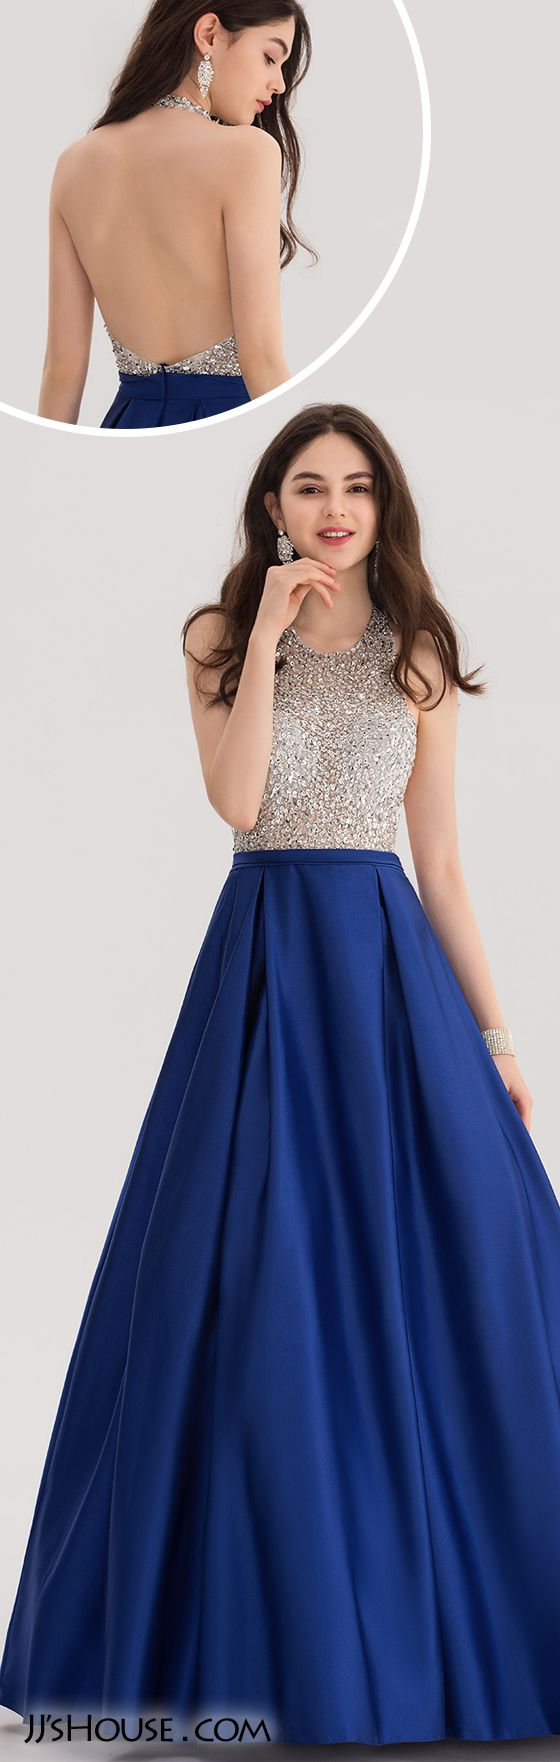 Ball-Gown Halter Floor-Length Satin Prom Dress With Beading Sequins#JJsHouse #Prom dresses